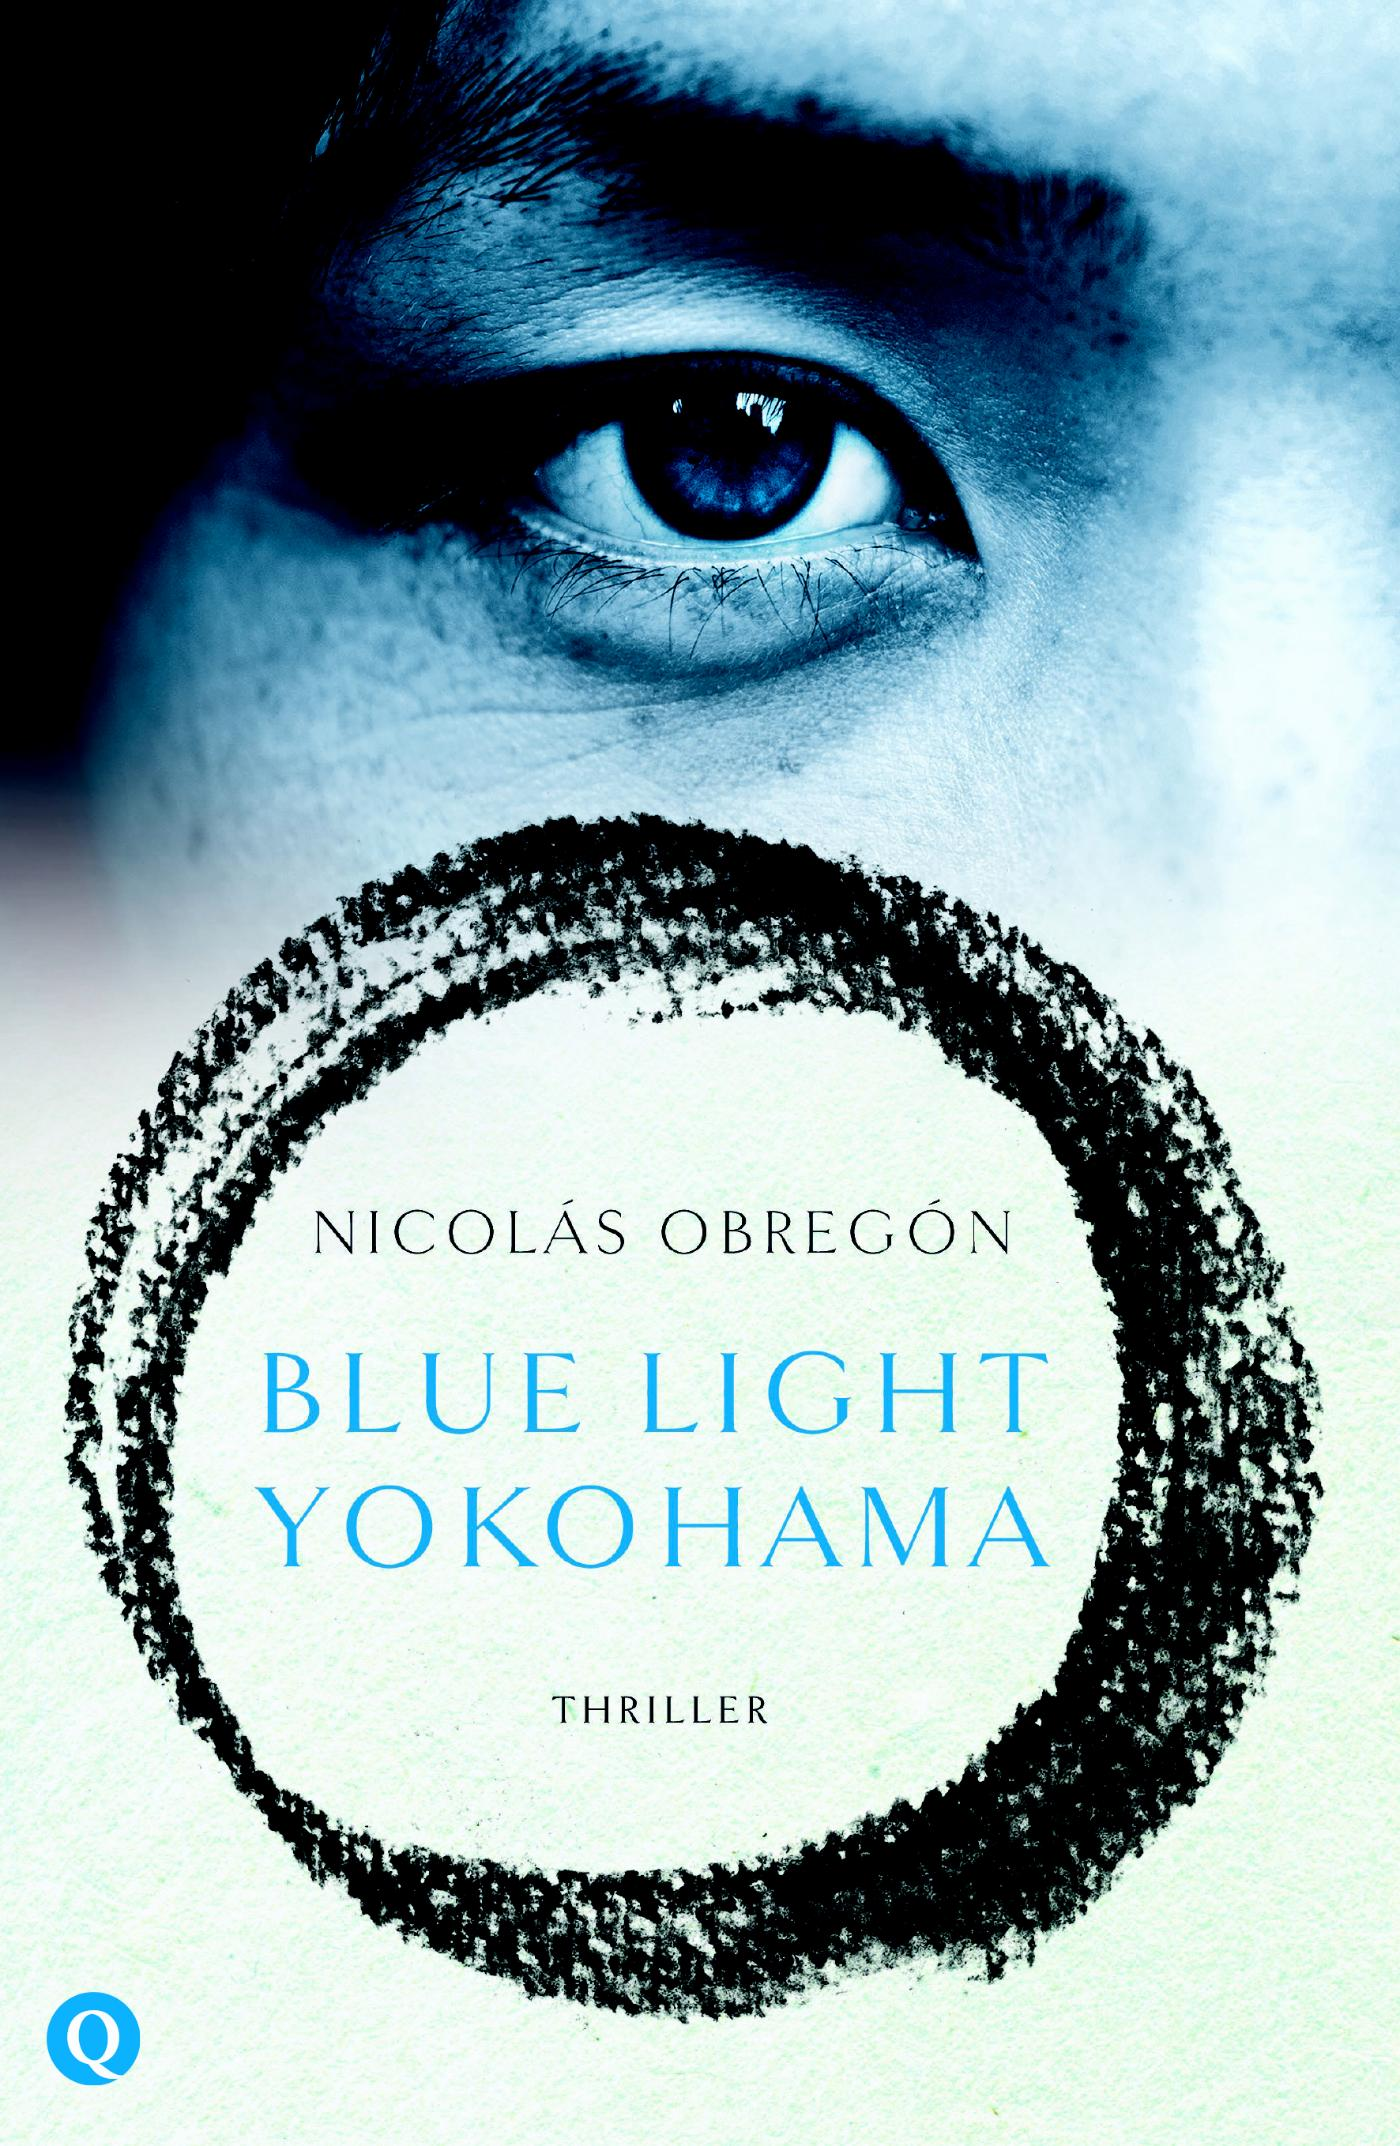 Blue light yokohama | Nicolás Obregón | 9789021403137